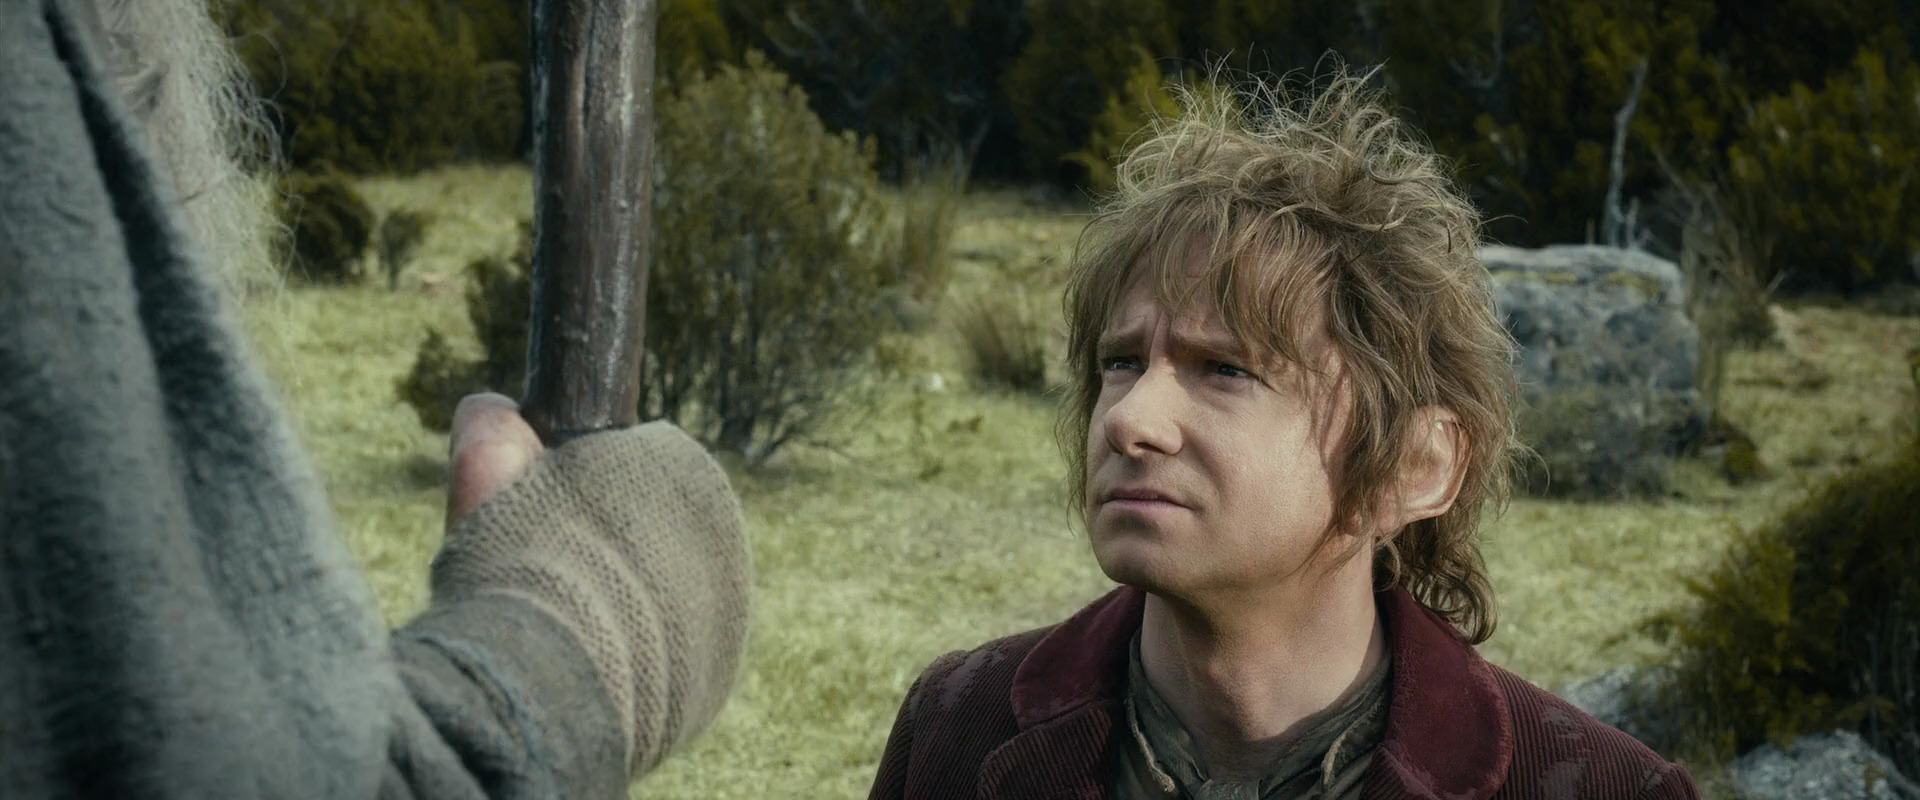 Download The Hobbit The Desolation of Smaug (2013) 1080p 2GB